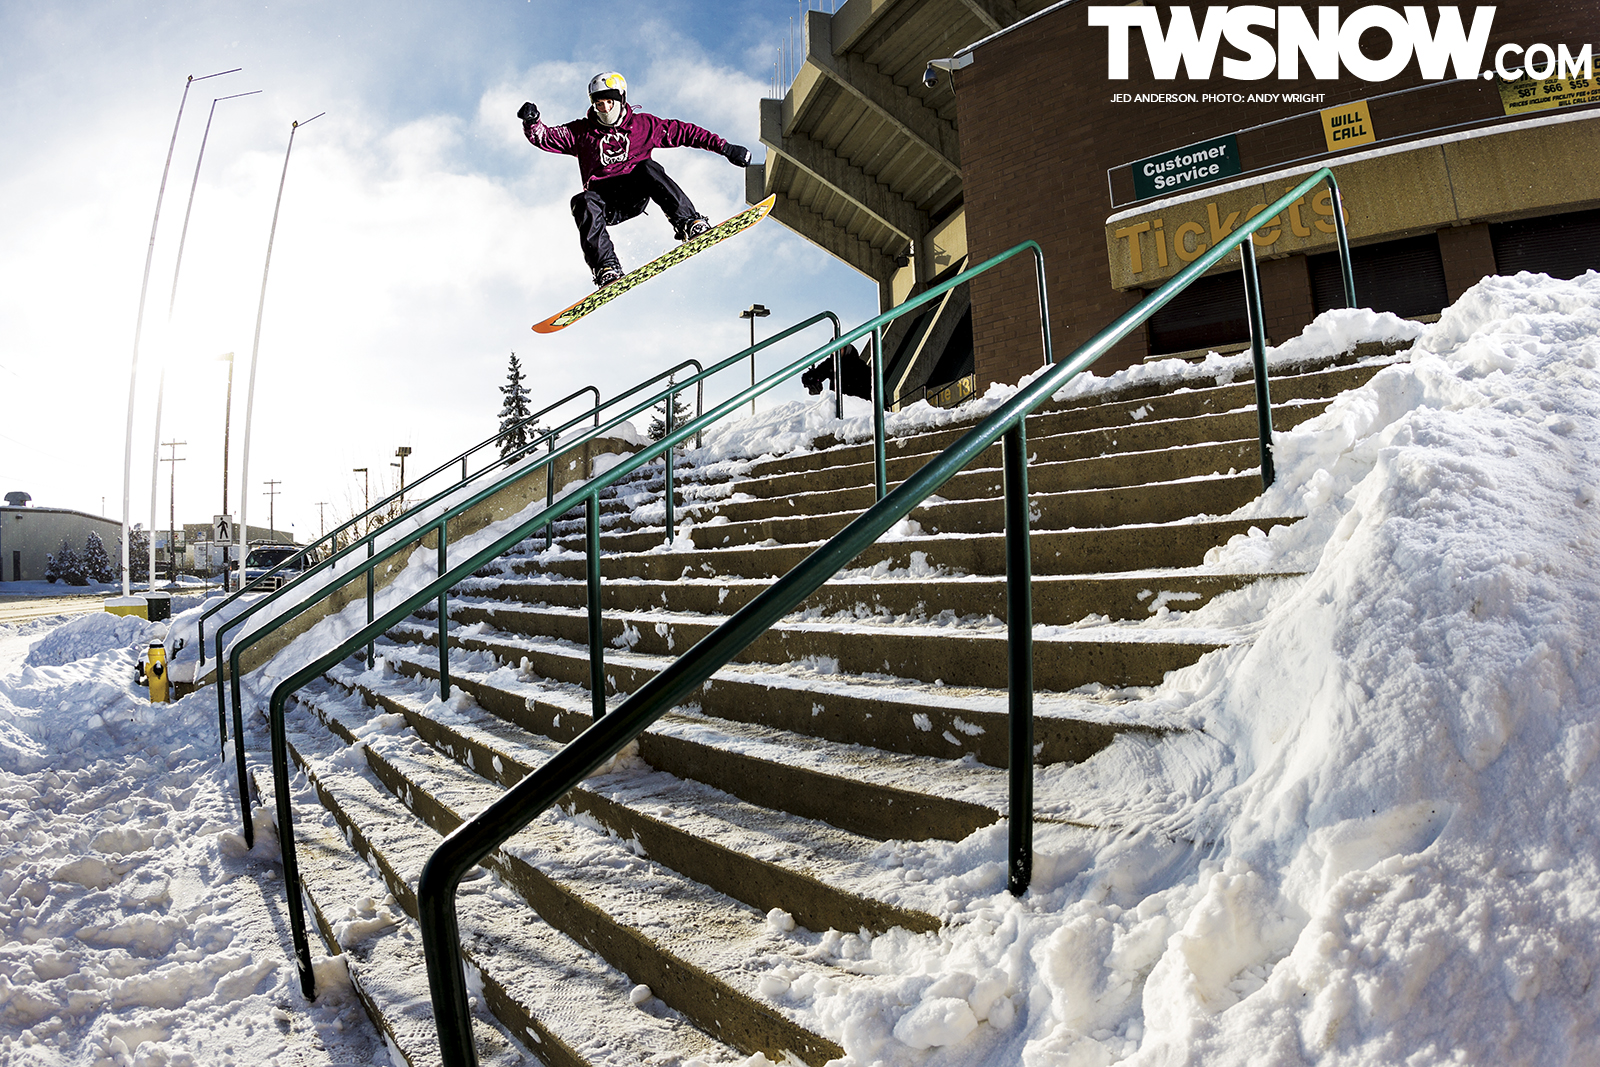 Wallpaper Wednesday Ride Everything TransWorld SNOWboarding Page 1600x1067